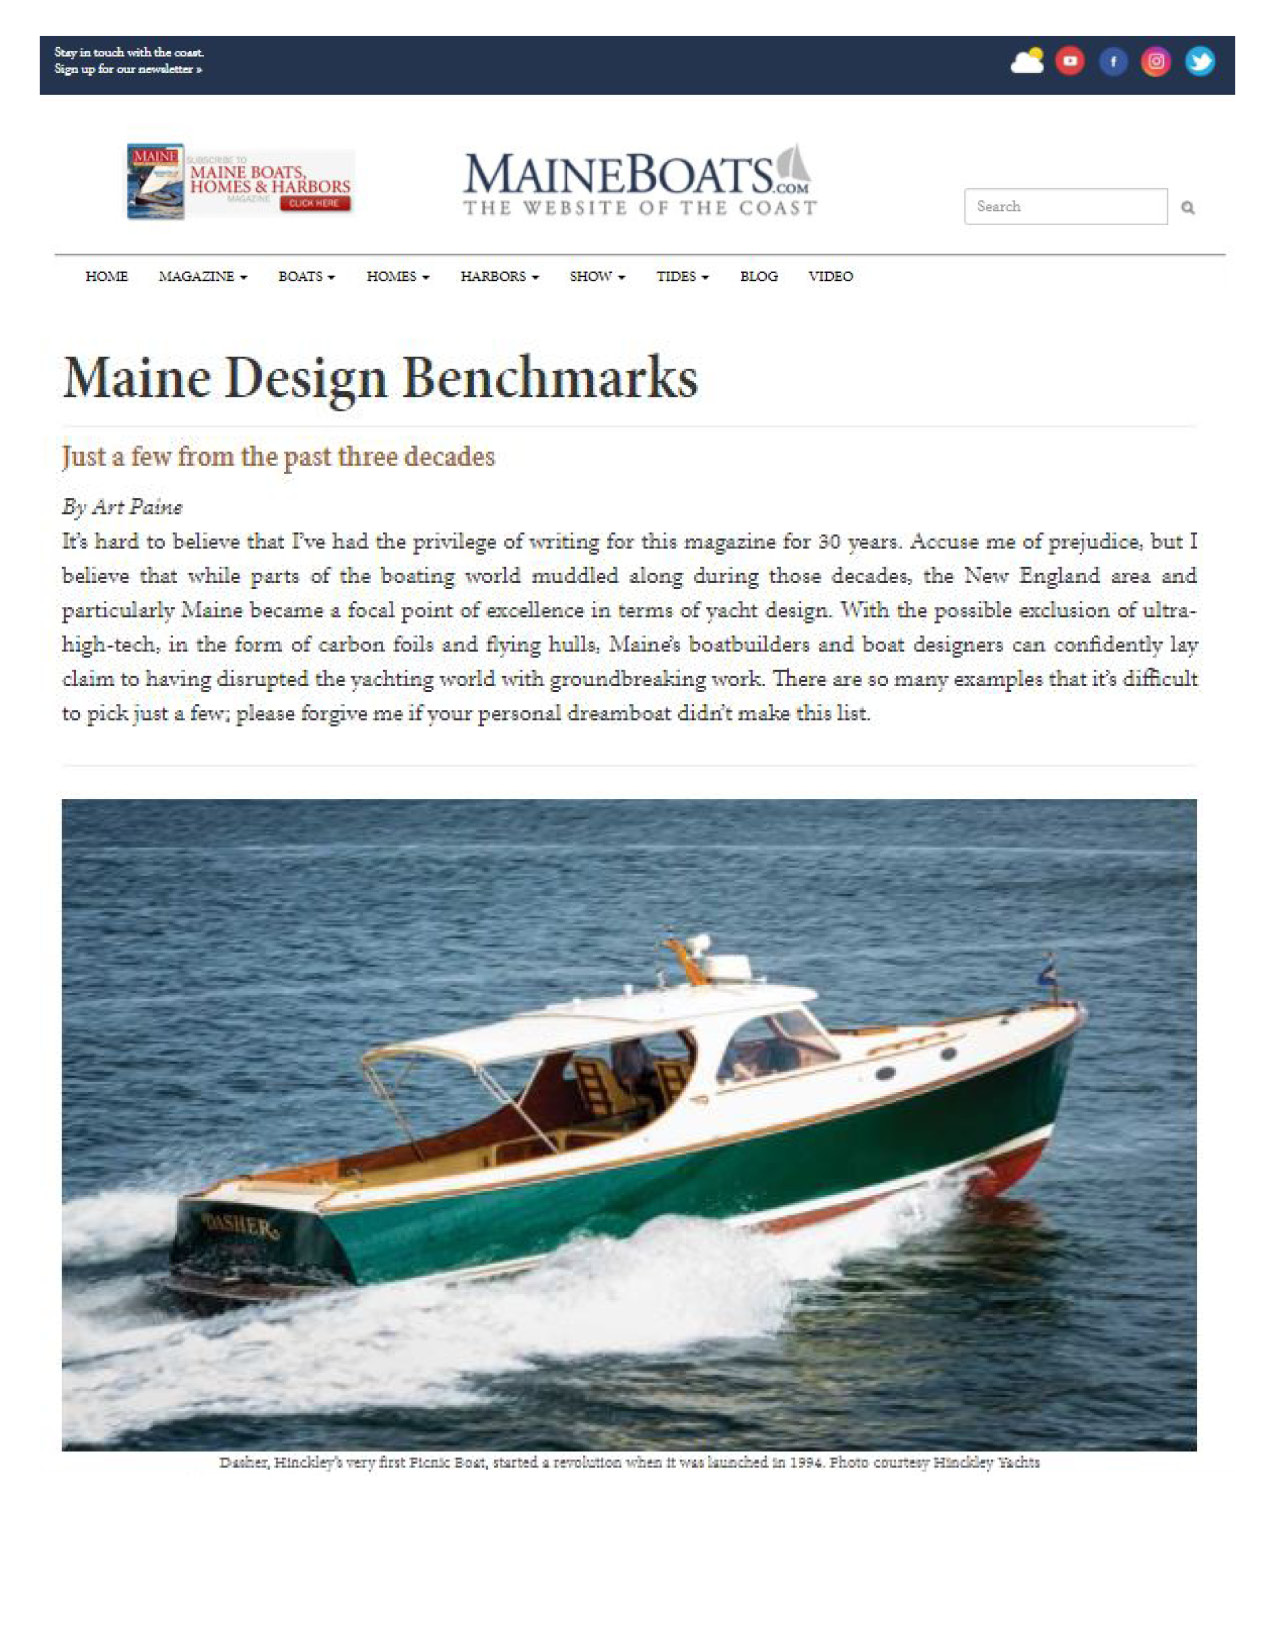 Hinckley Picnic Boat Featured on Maine Boats, Homes & Harbors